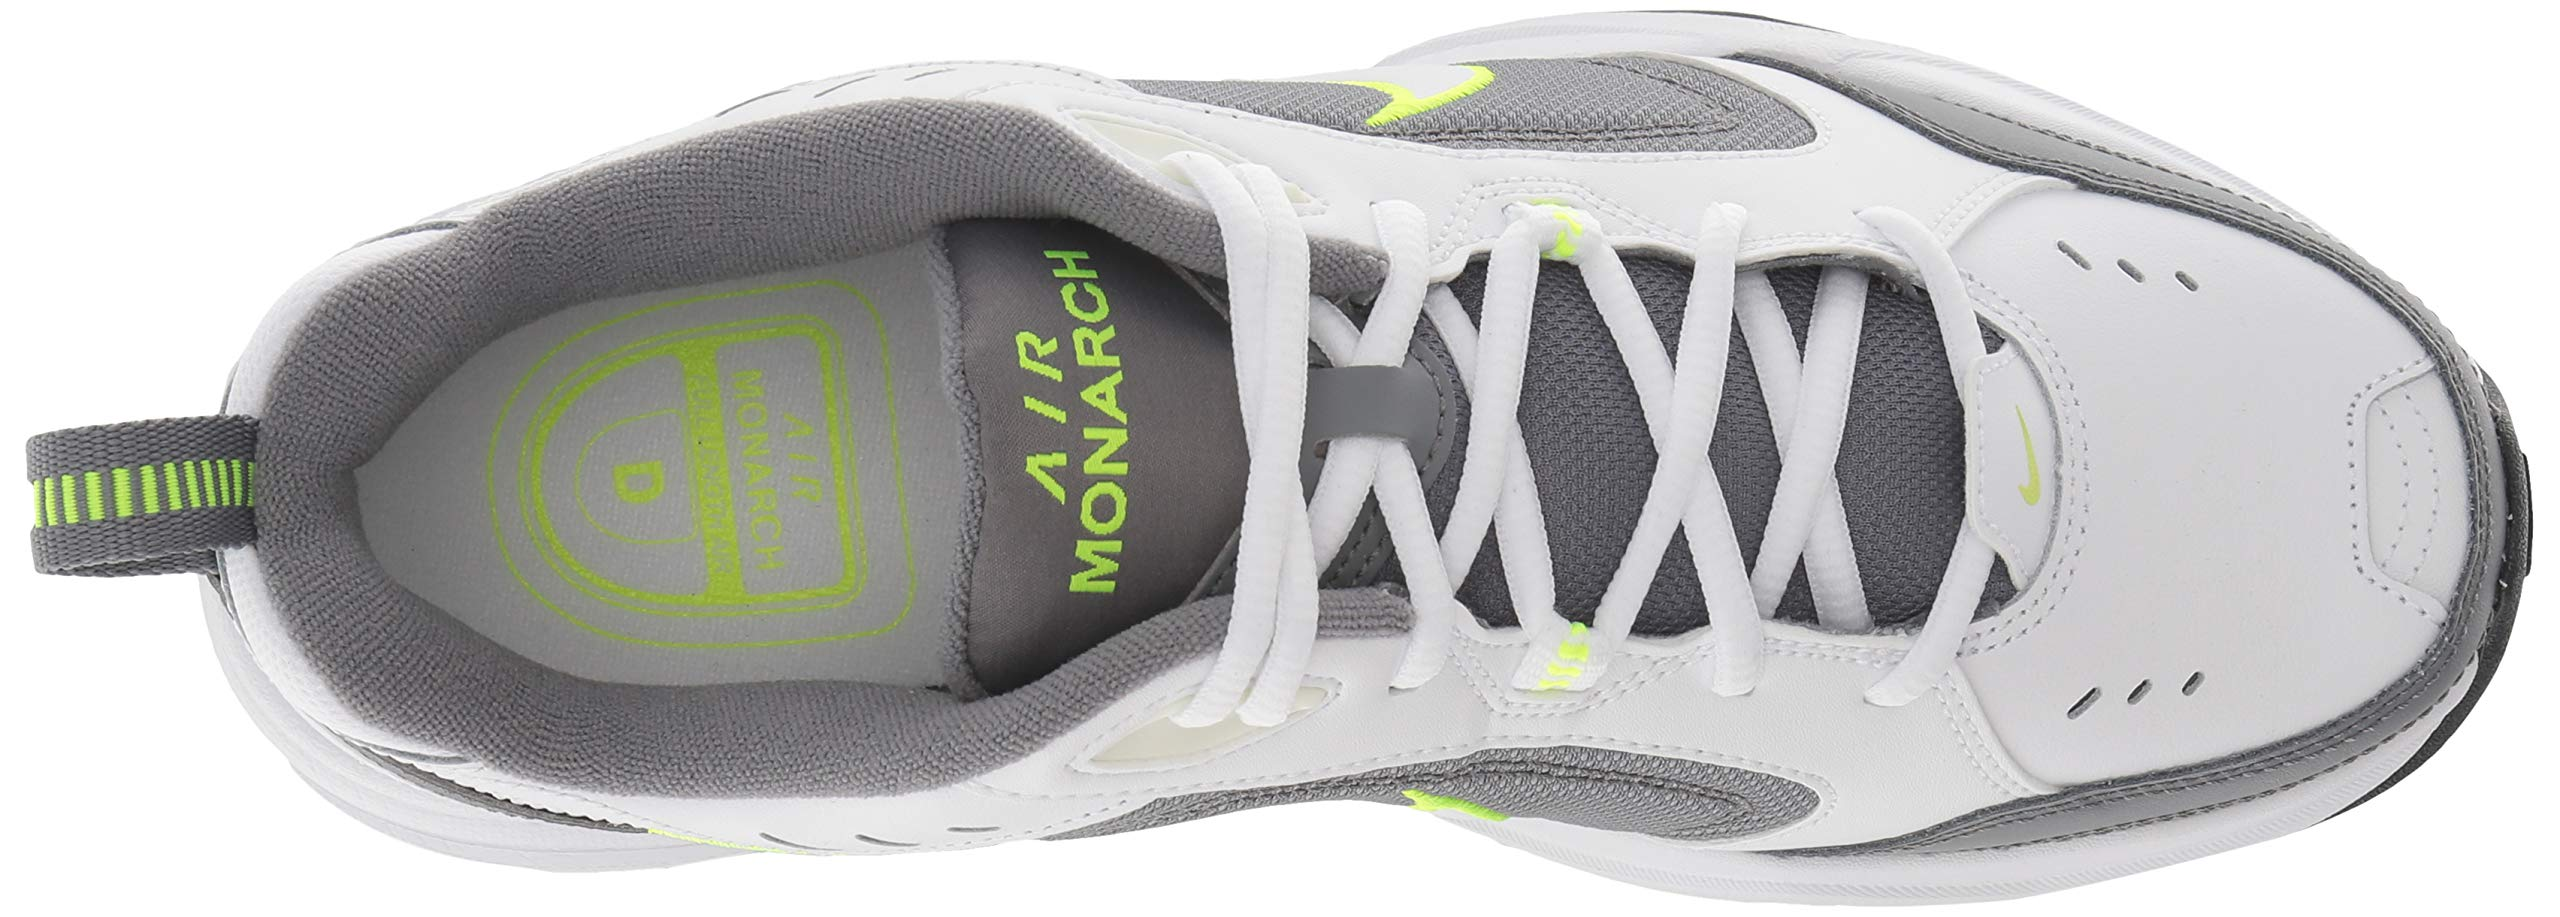 Nike Men's Air Monarch IV Cross Trainer, White-Cool Grey-Anthracite, 6.5 Regular US by Nike (Image #15)